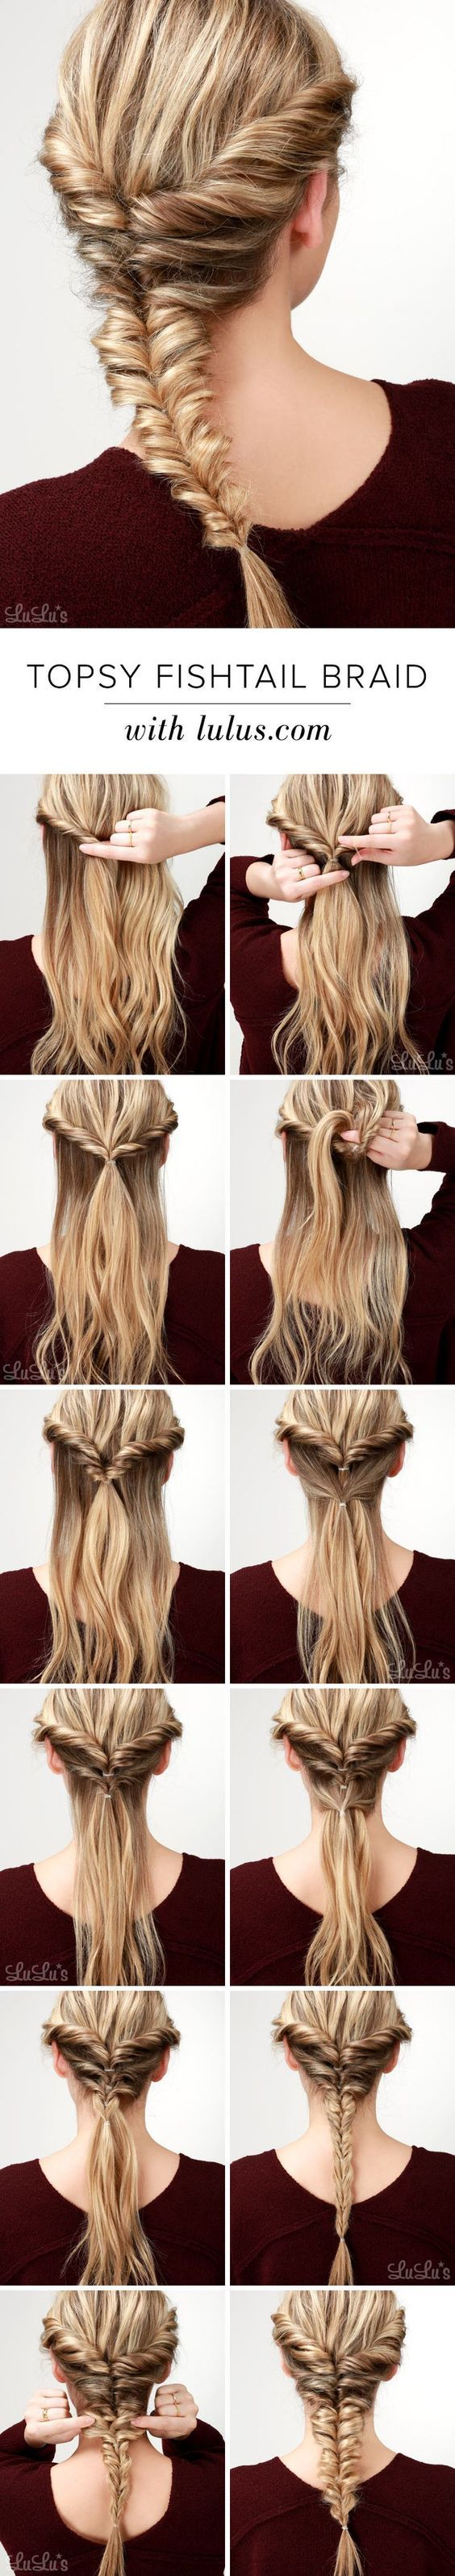 LuLu*s How-To: Topsy Fishtail Braid Tutorial | Hairstyles | Long Hair